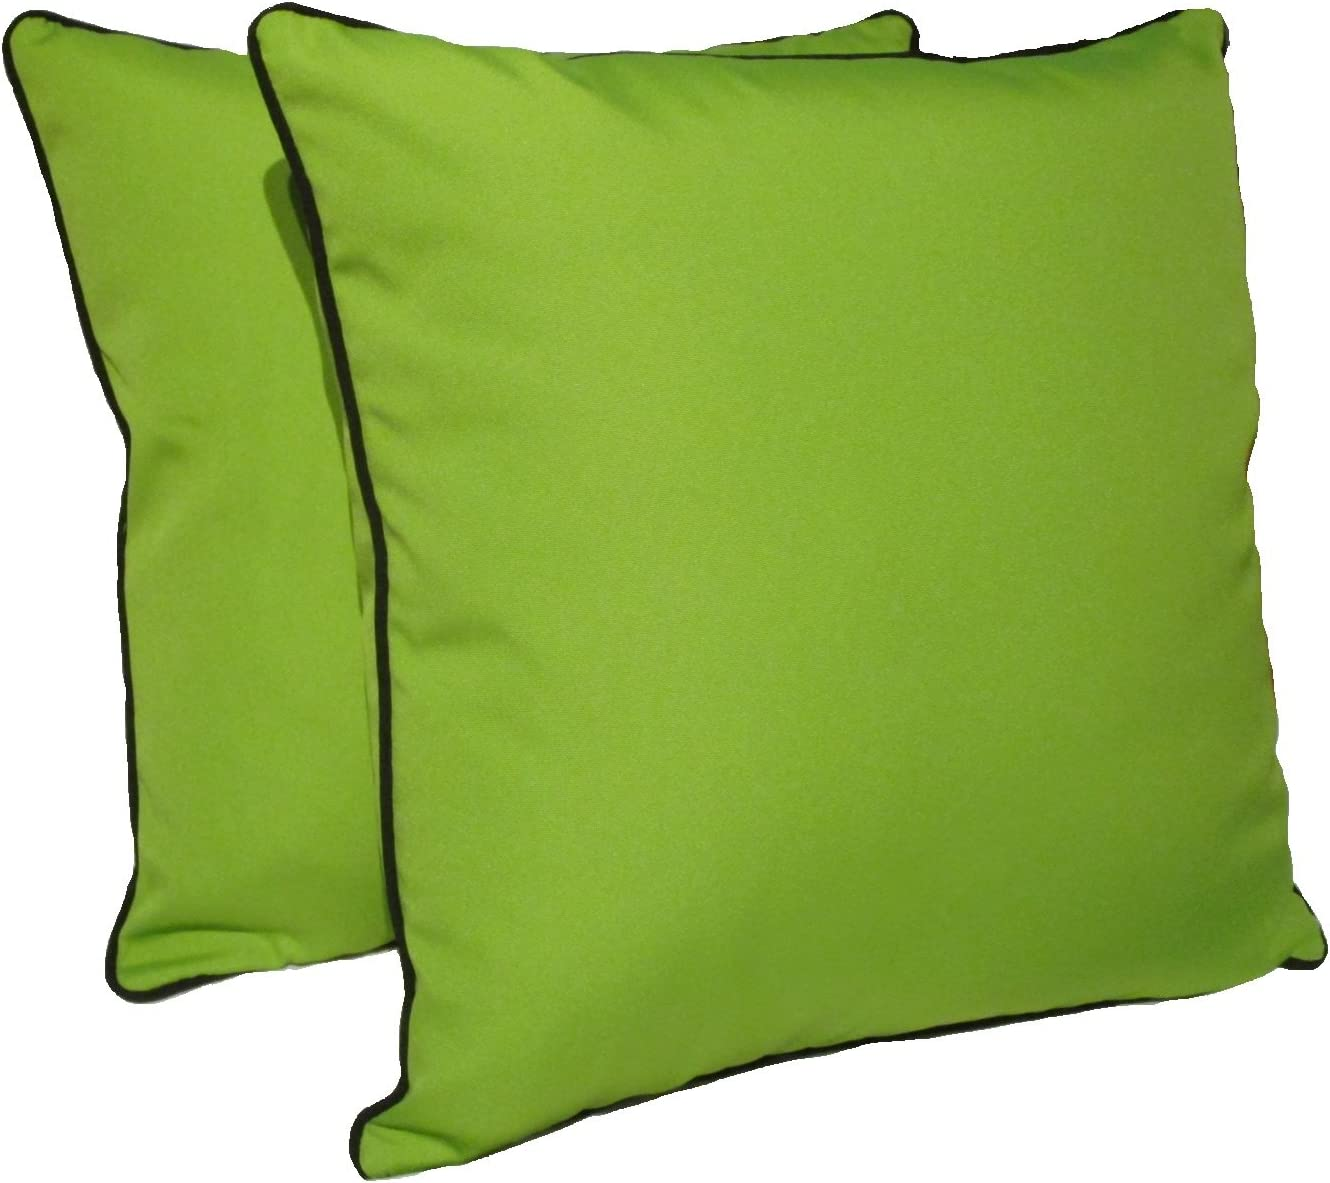 D M Bedding Polyester 18×18 Inches Indoor outdoor Decorative Throw Pillow w Black Piping, Set of 2, Green